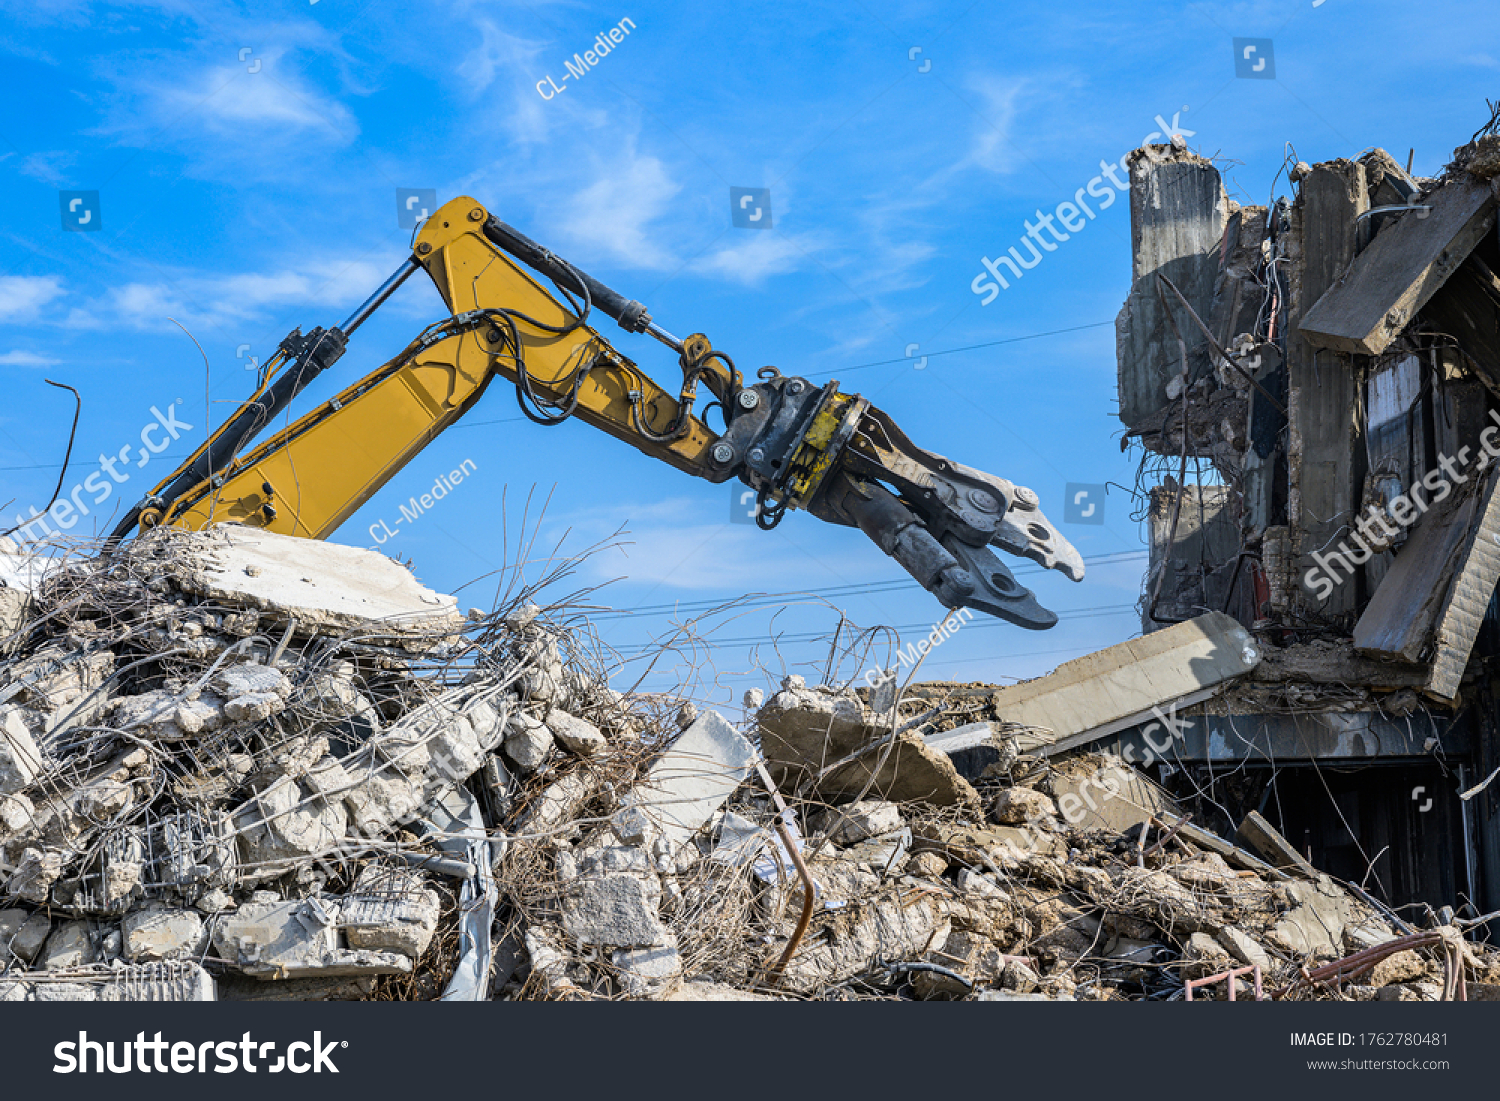 Building House Demolition site Excavator with hydraulic crasher machine and yellow container #1762780481